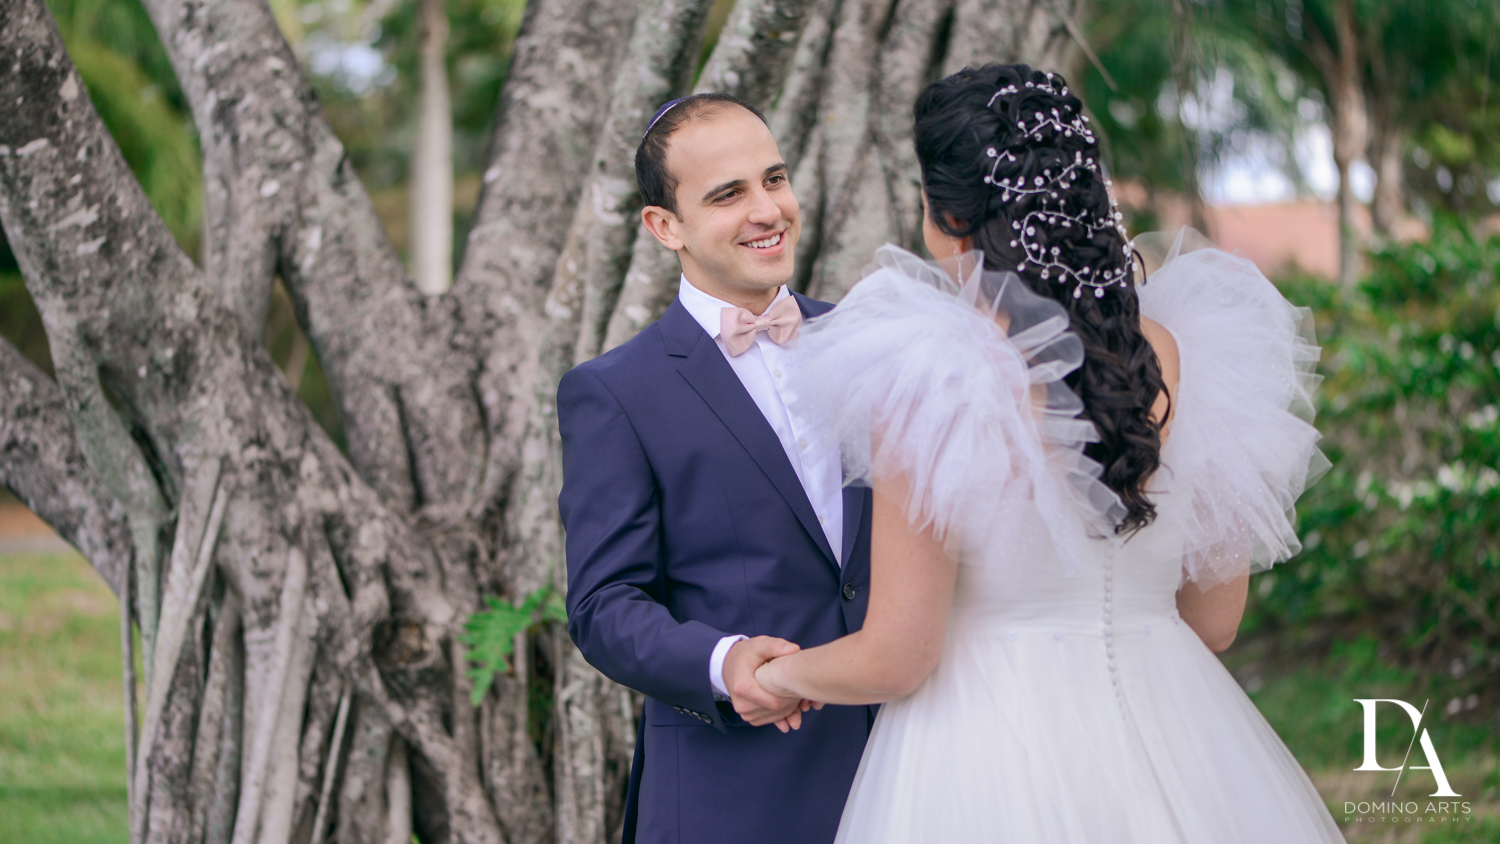 phairis luxury hair at Fairy-Tale Wedding at BNai Torah Boca Raton by Domino Arts Photography